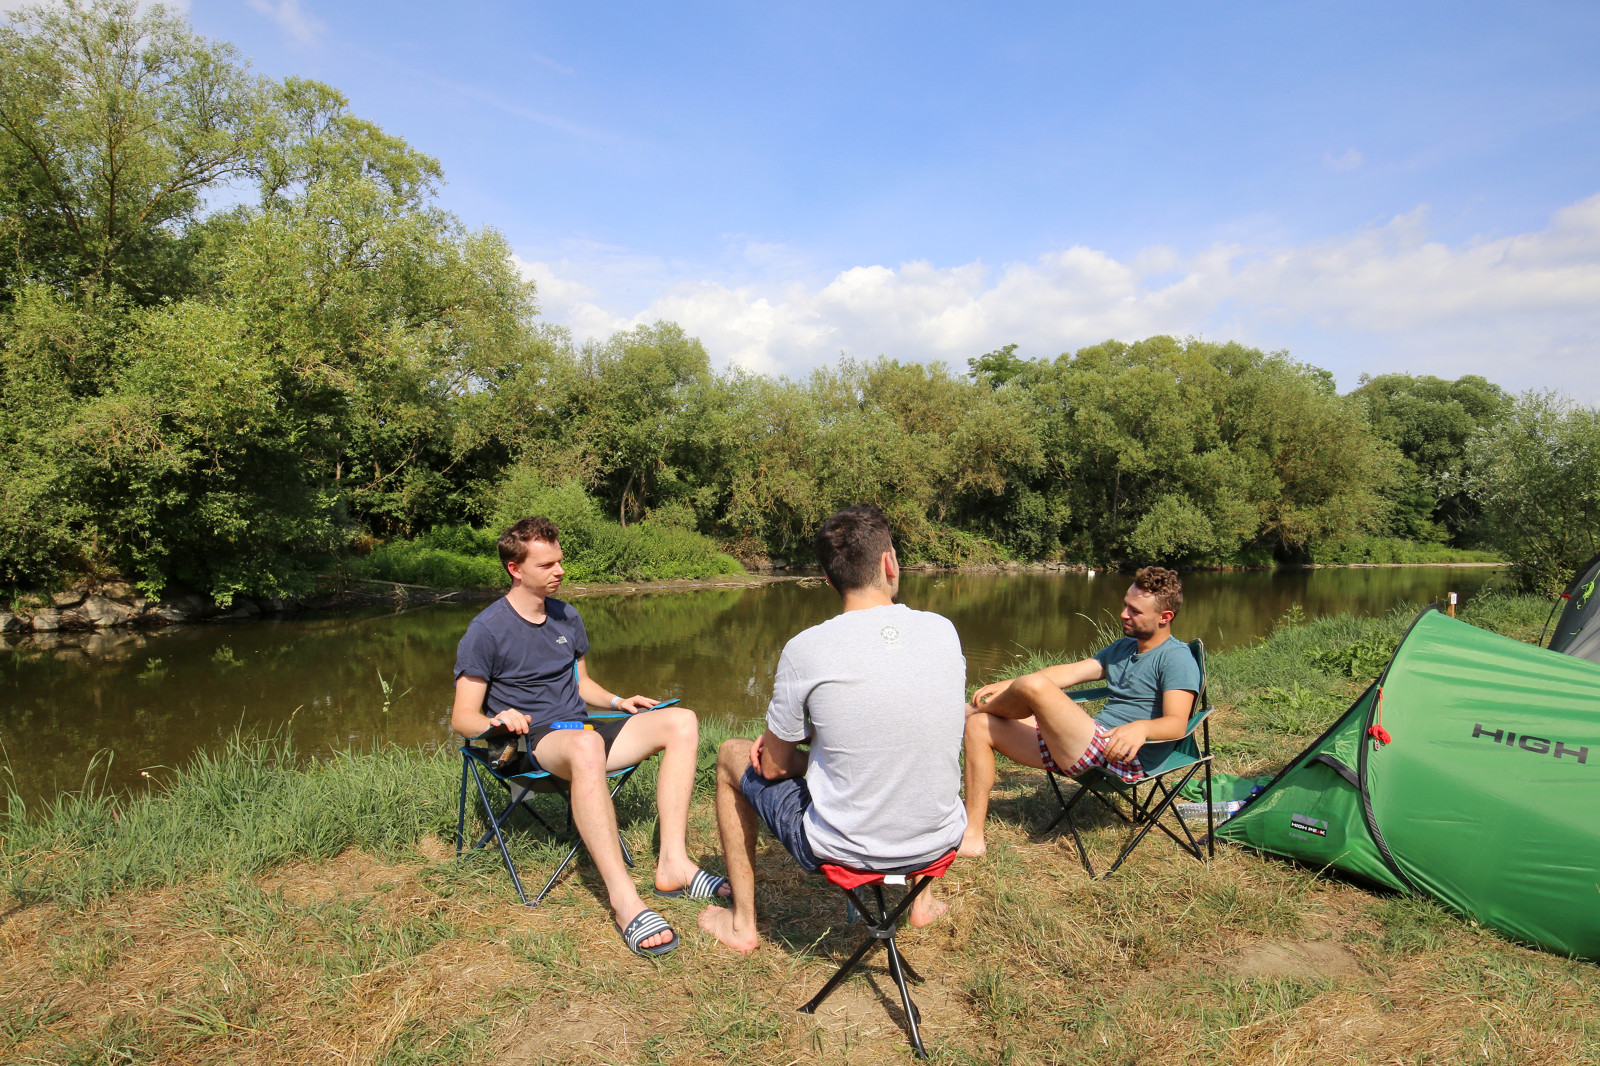 Emplacement - Emplacement Camping - Camping De l'ill - Colmar